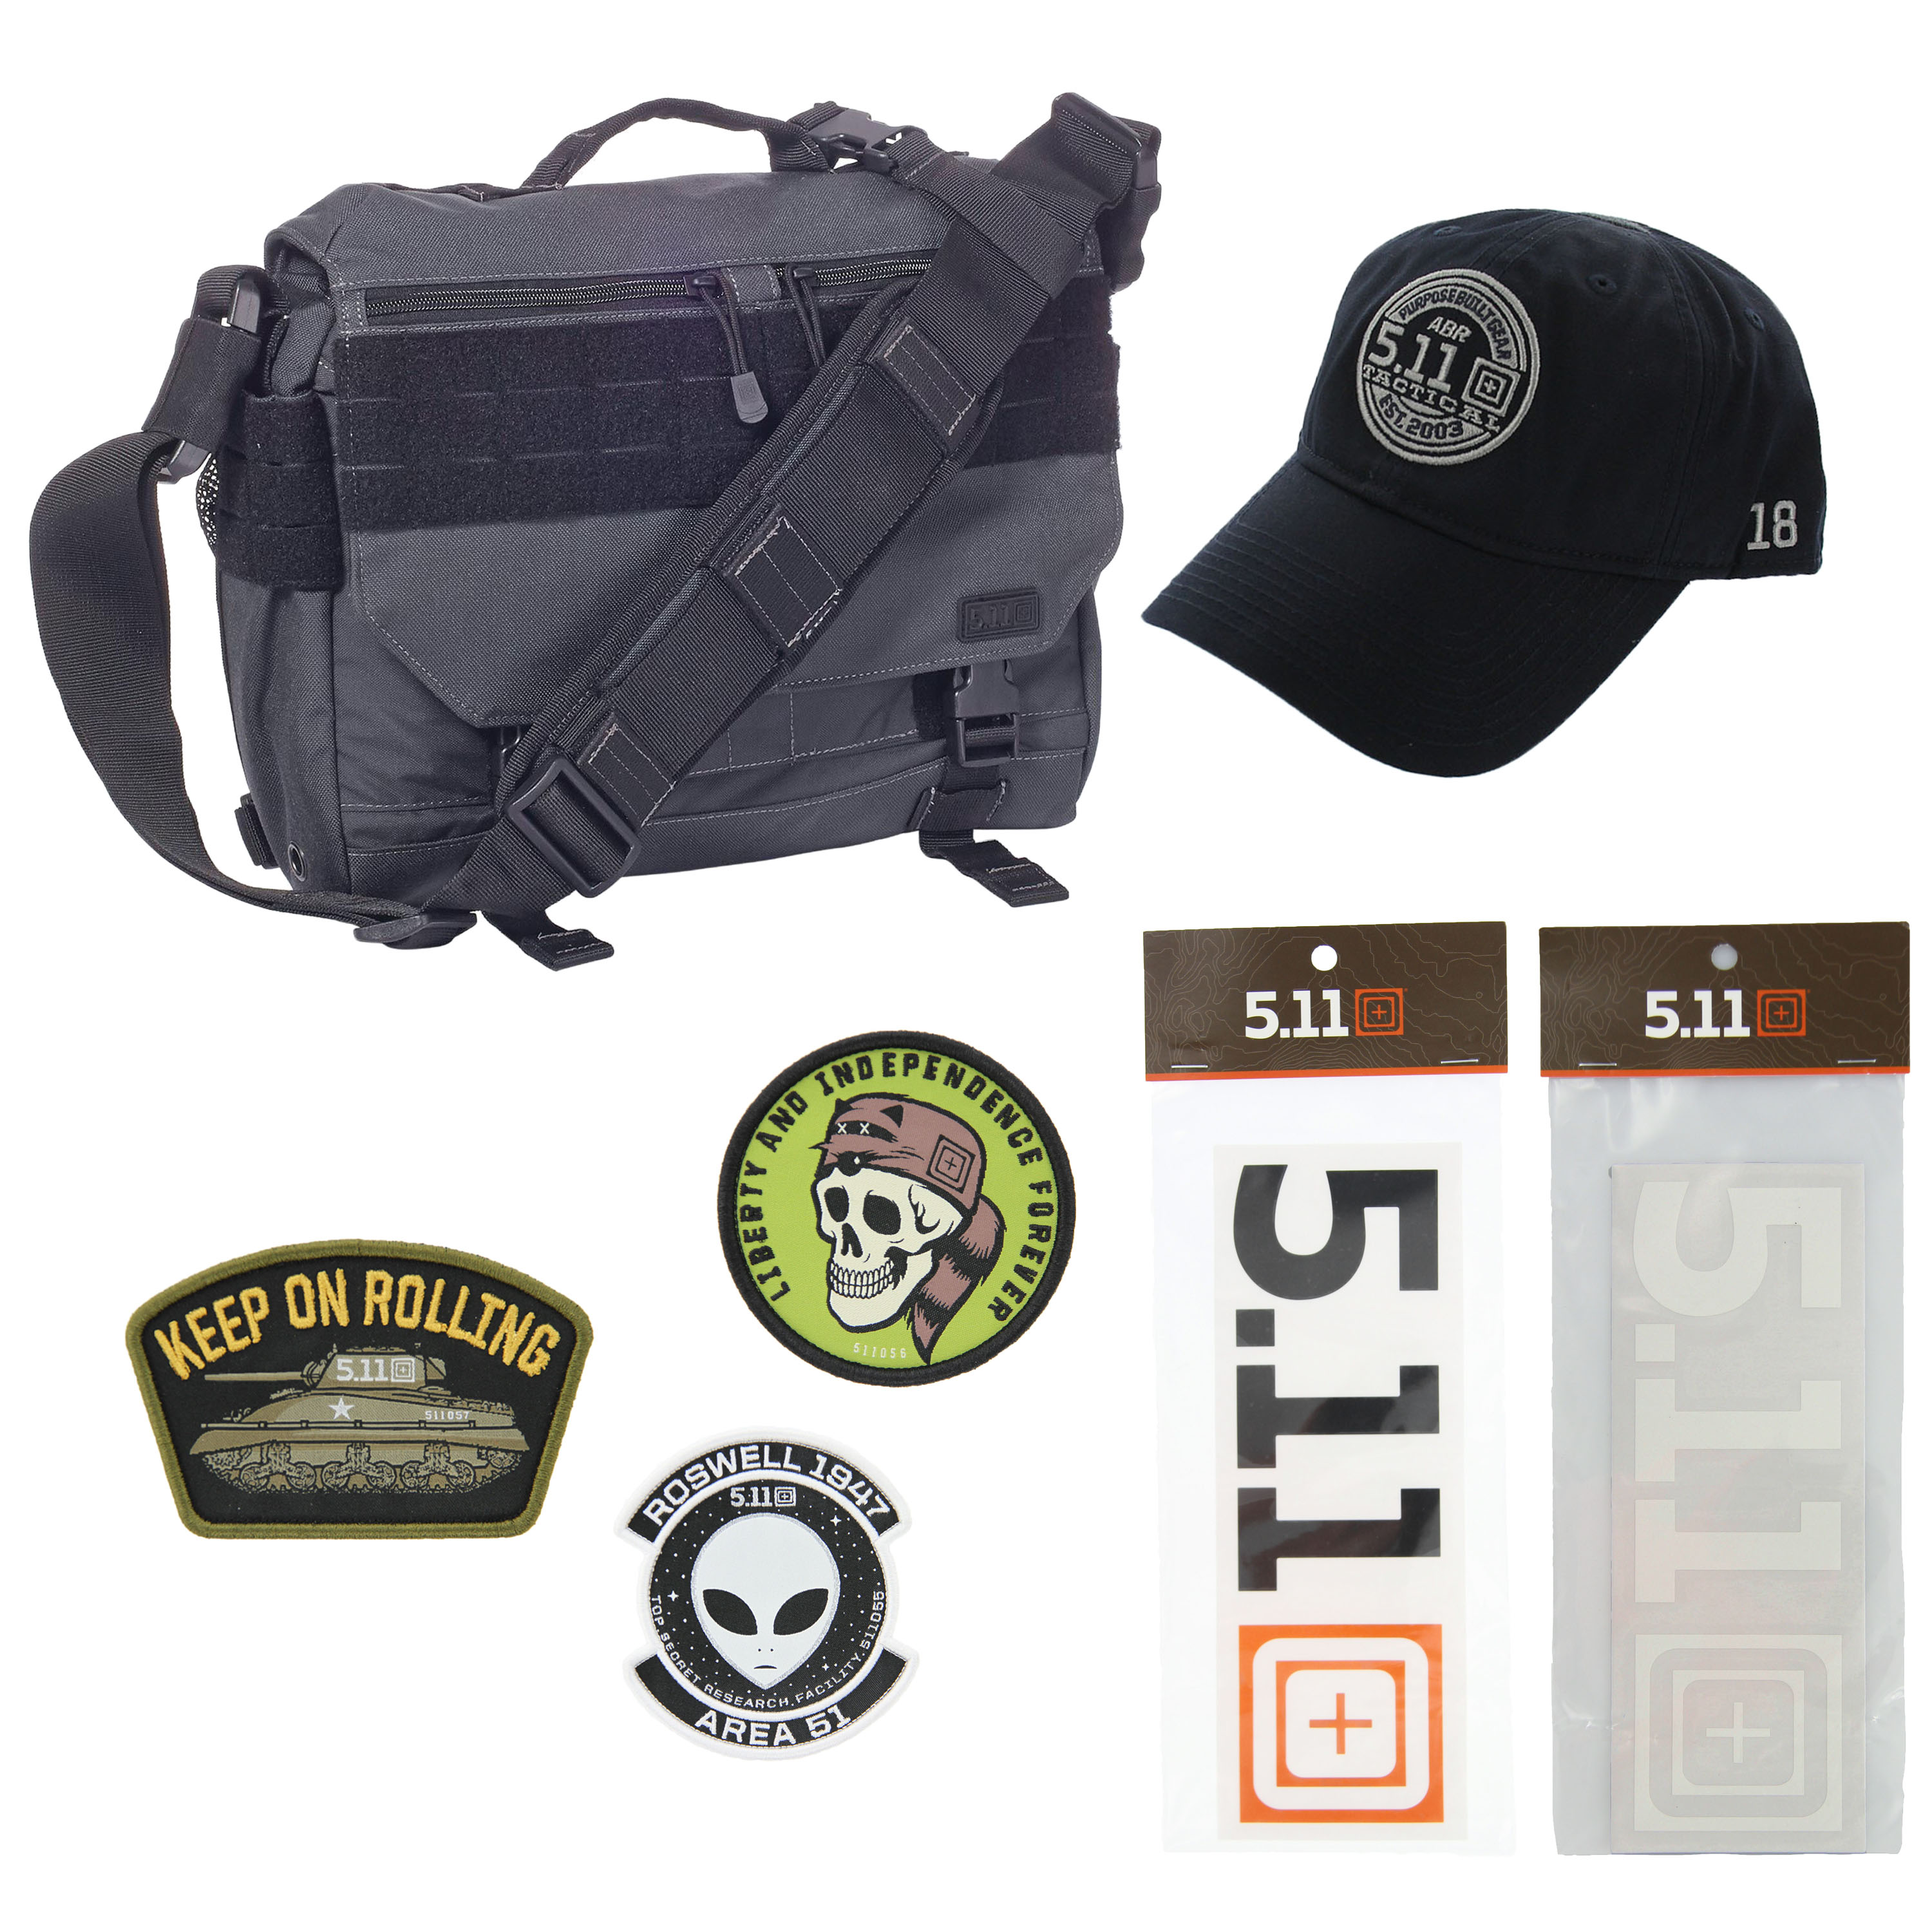 5.11 Kits RUSH Delivery MIKE Tactical Messenger Bag Hat Patches Pack ... 041a670aad61